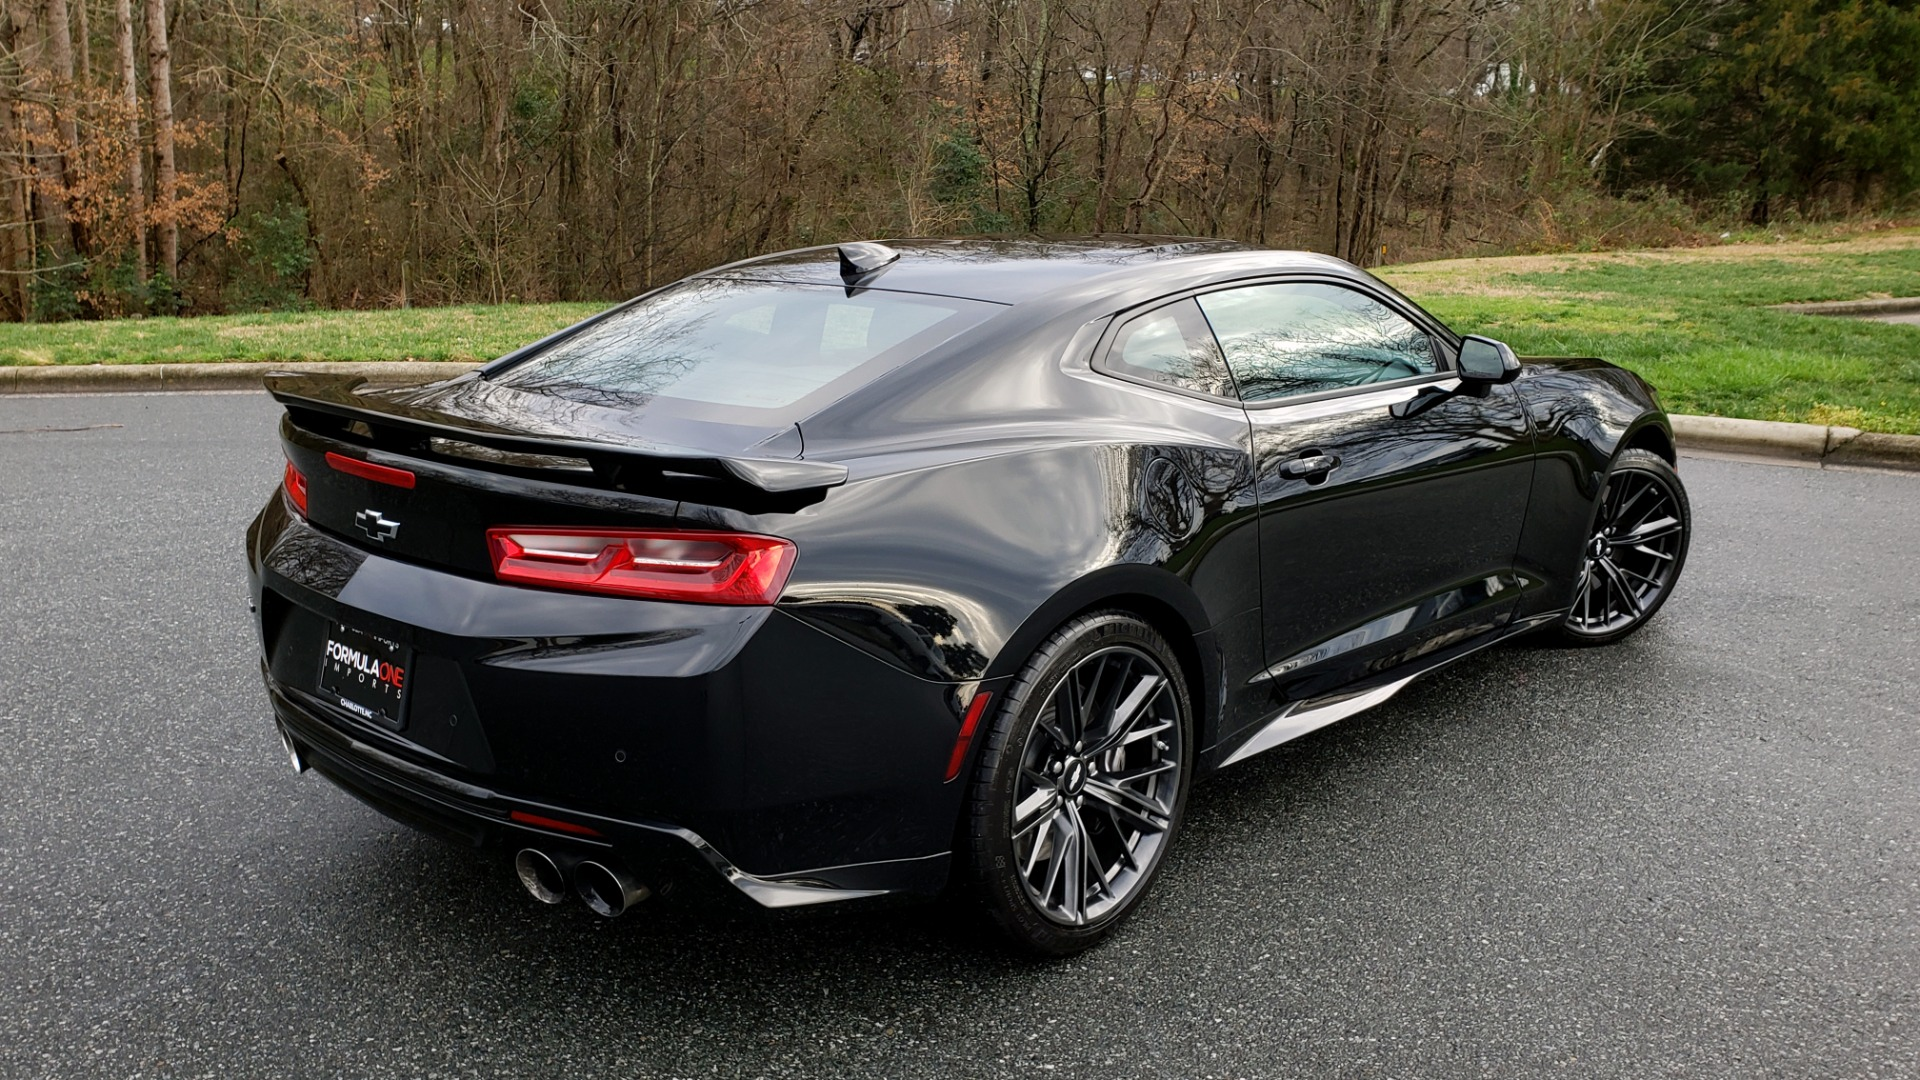 Used 2018 Chevrolet CAMARO ZL1 6.2L SUPERCHARGED V8 650 / NAV / SUNROOF / REARVIEW for sale Sold at Formula Imports in Charlotte NC 28227 10